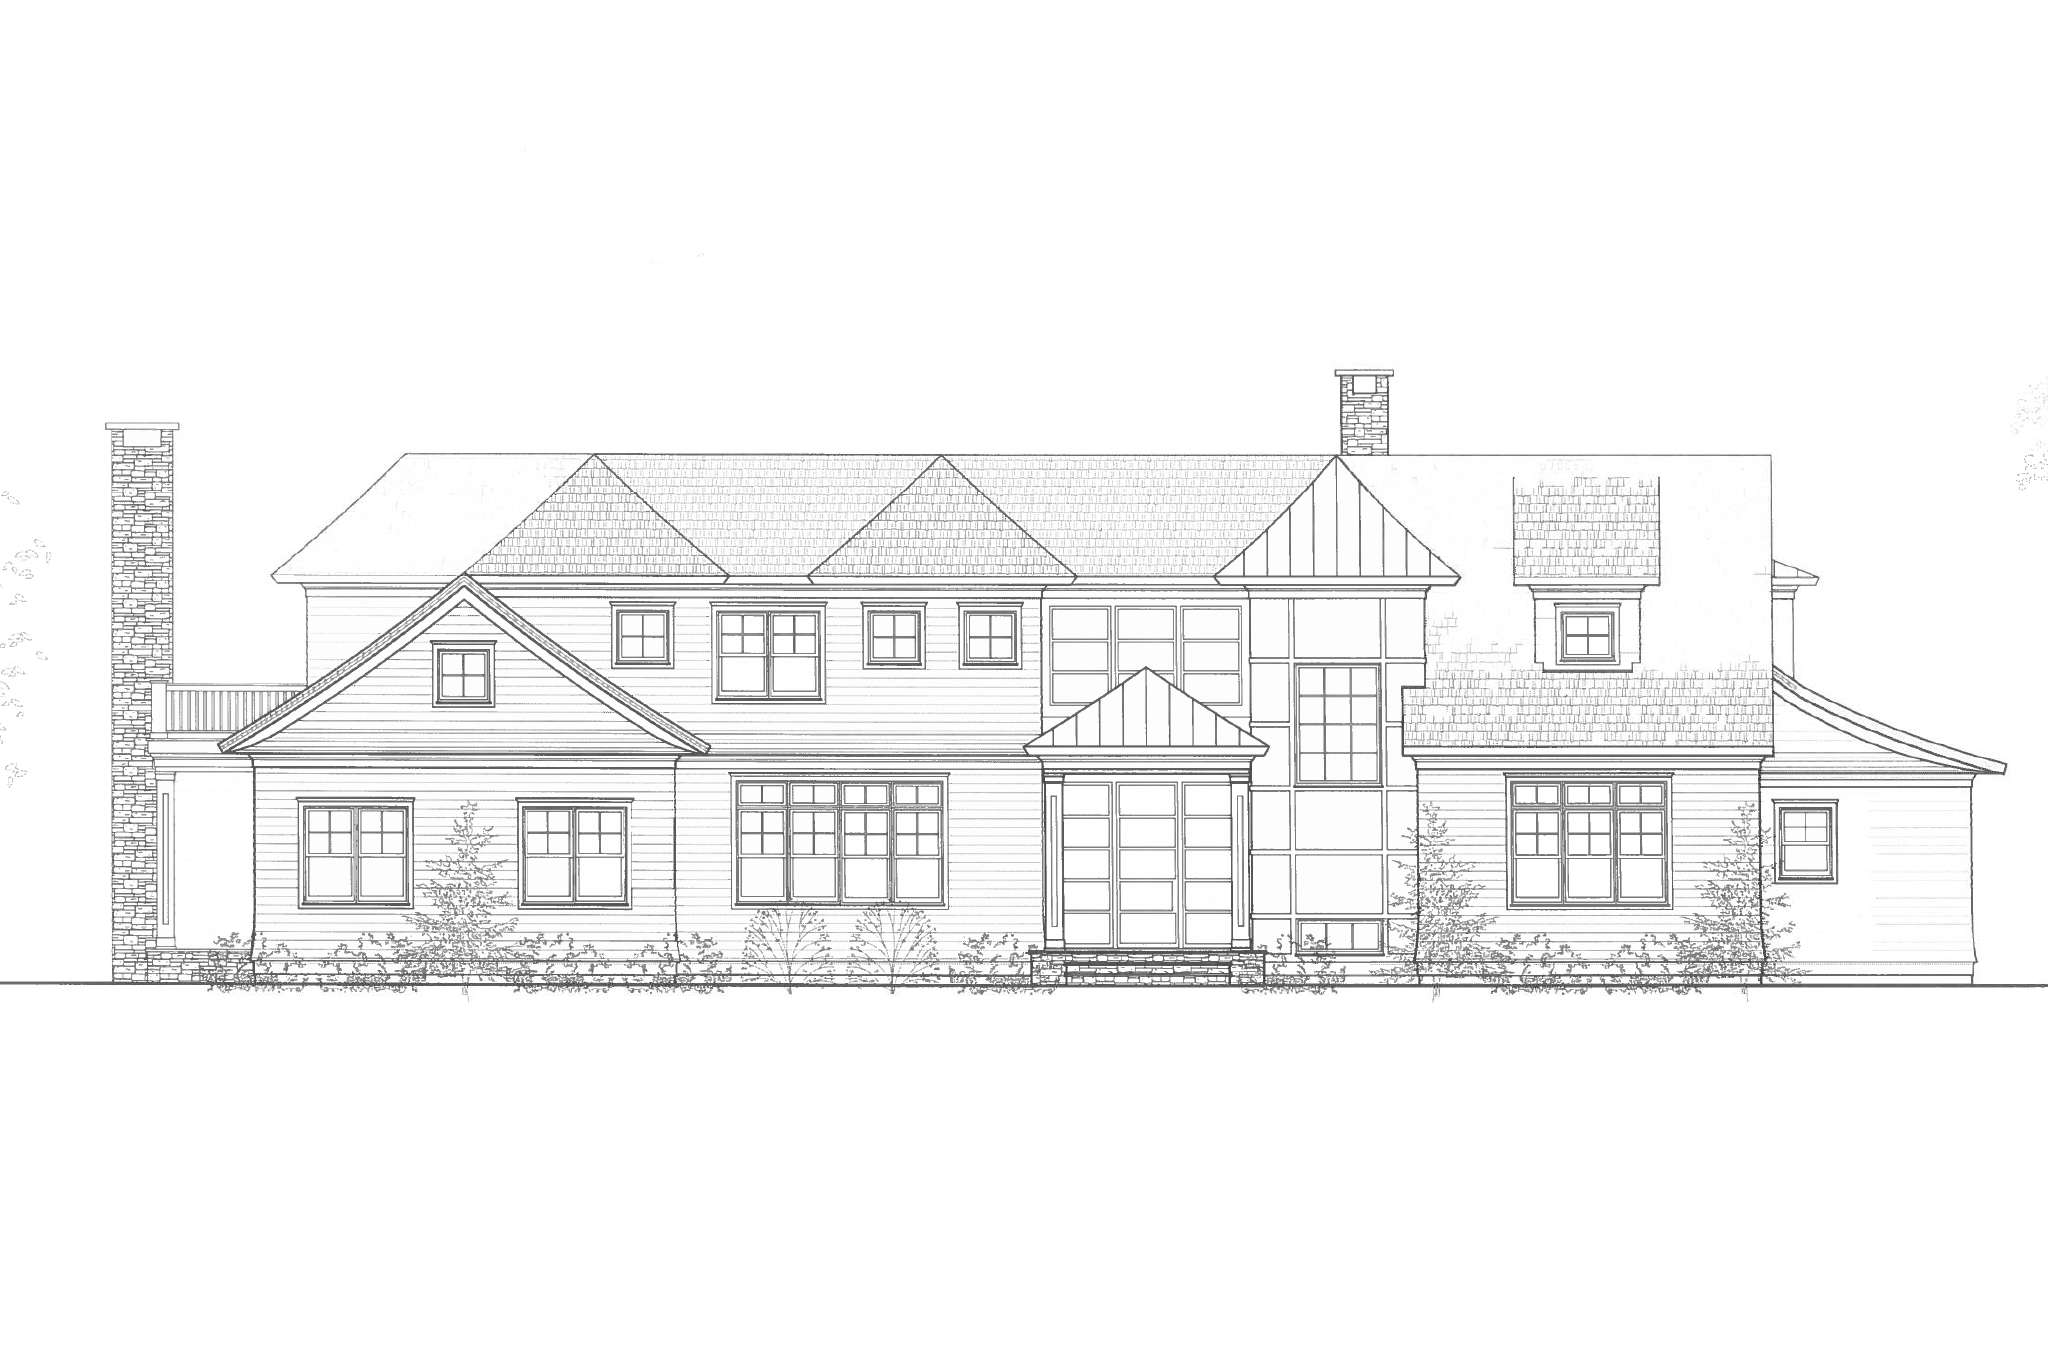 Single Family Home for Sale at New Construction In Coveted Bridgehampton South 28 Highland Terrace, Bridgehampton, New York